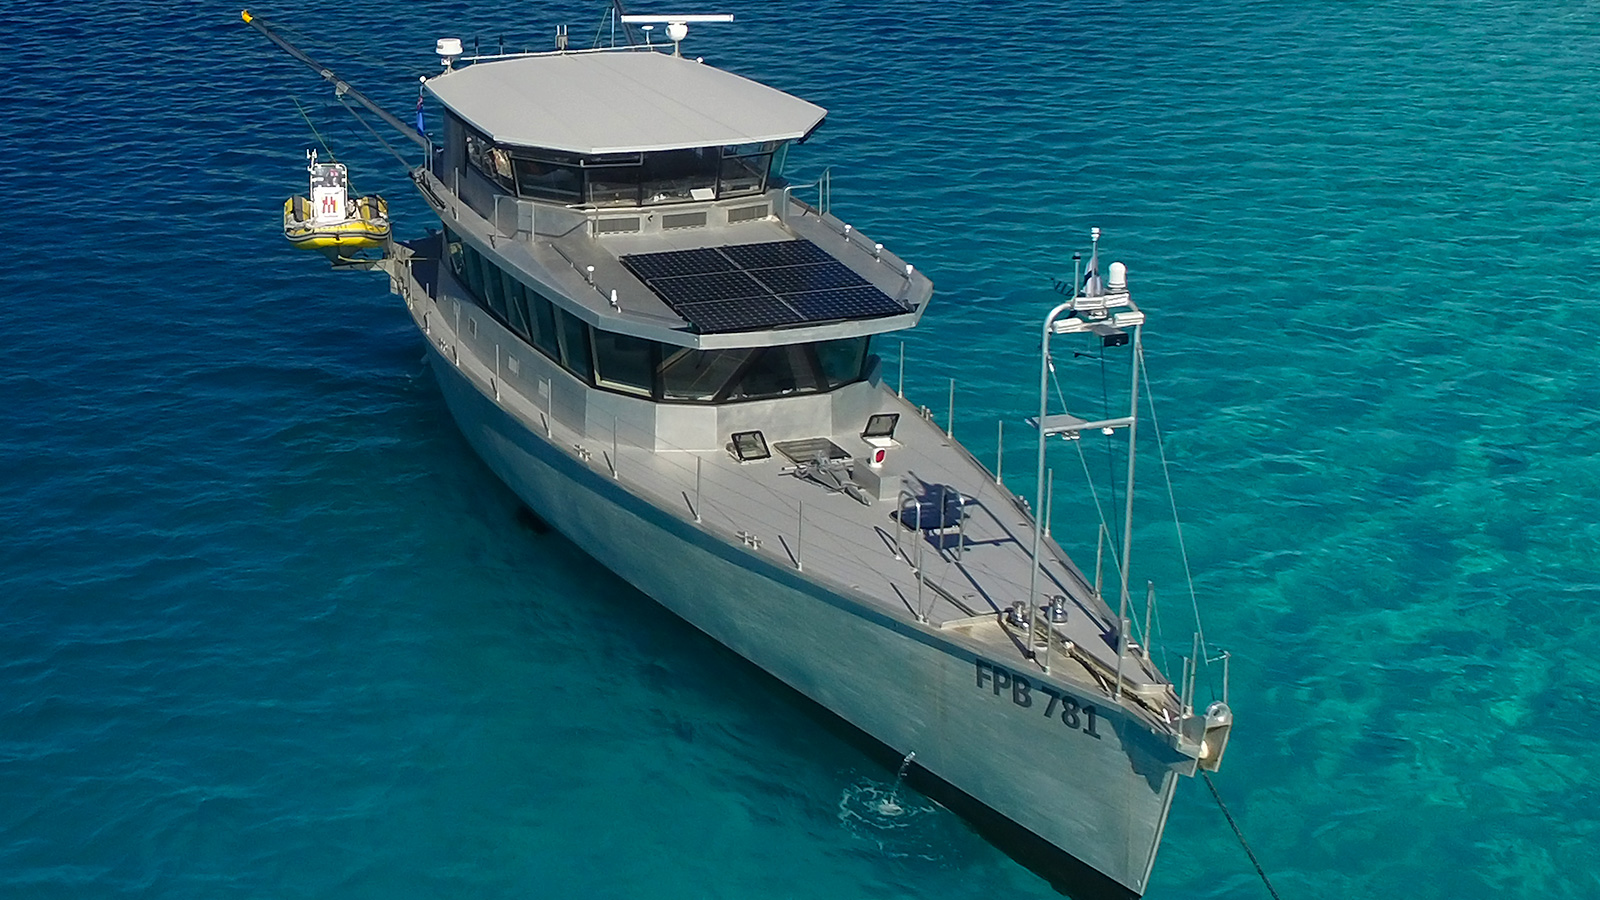 aerial-view-of-the-fpb-78-explorer-yacht-cochise-credit-steve-dashew